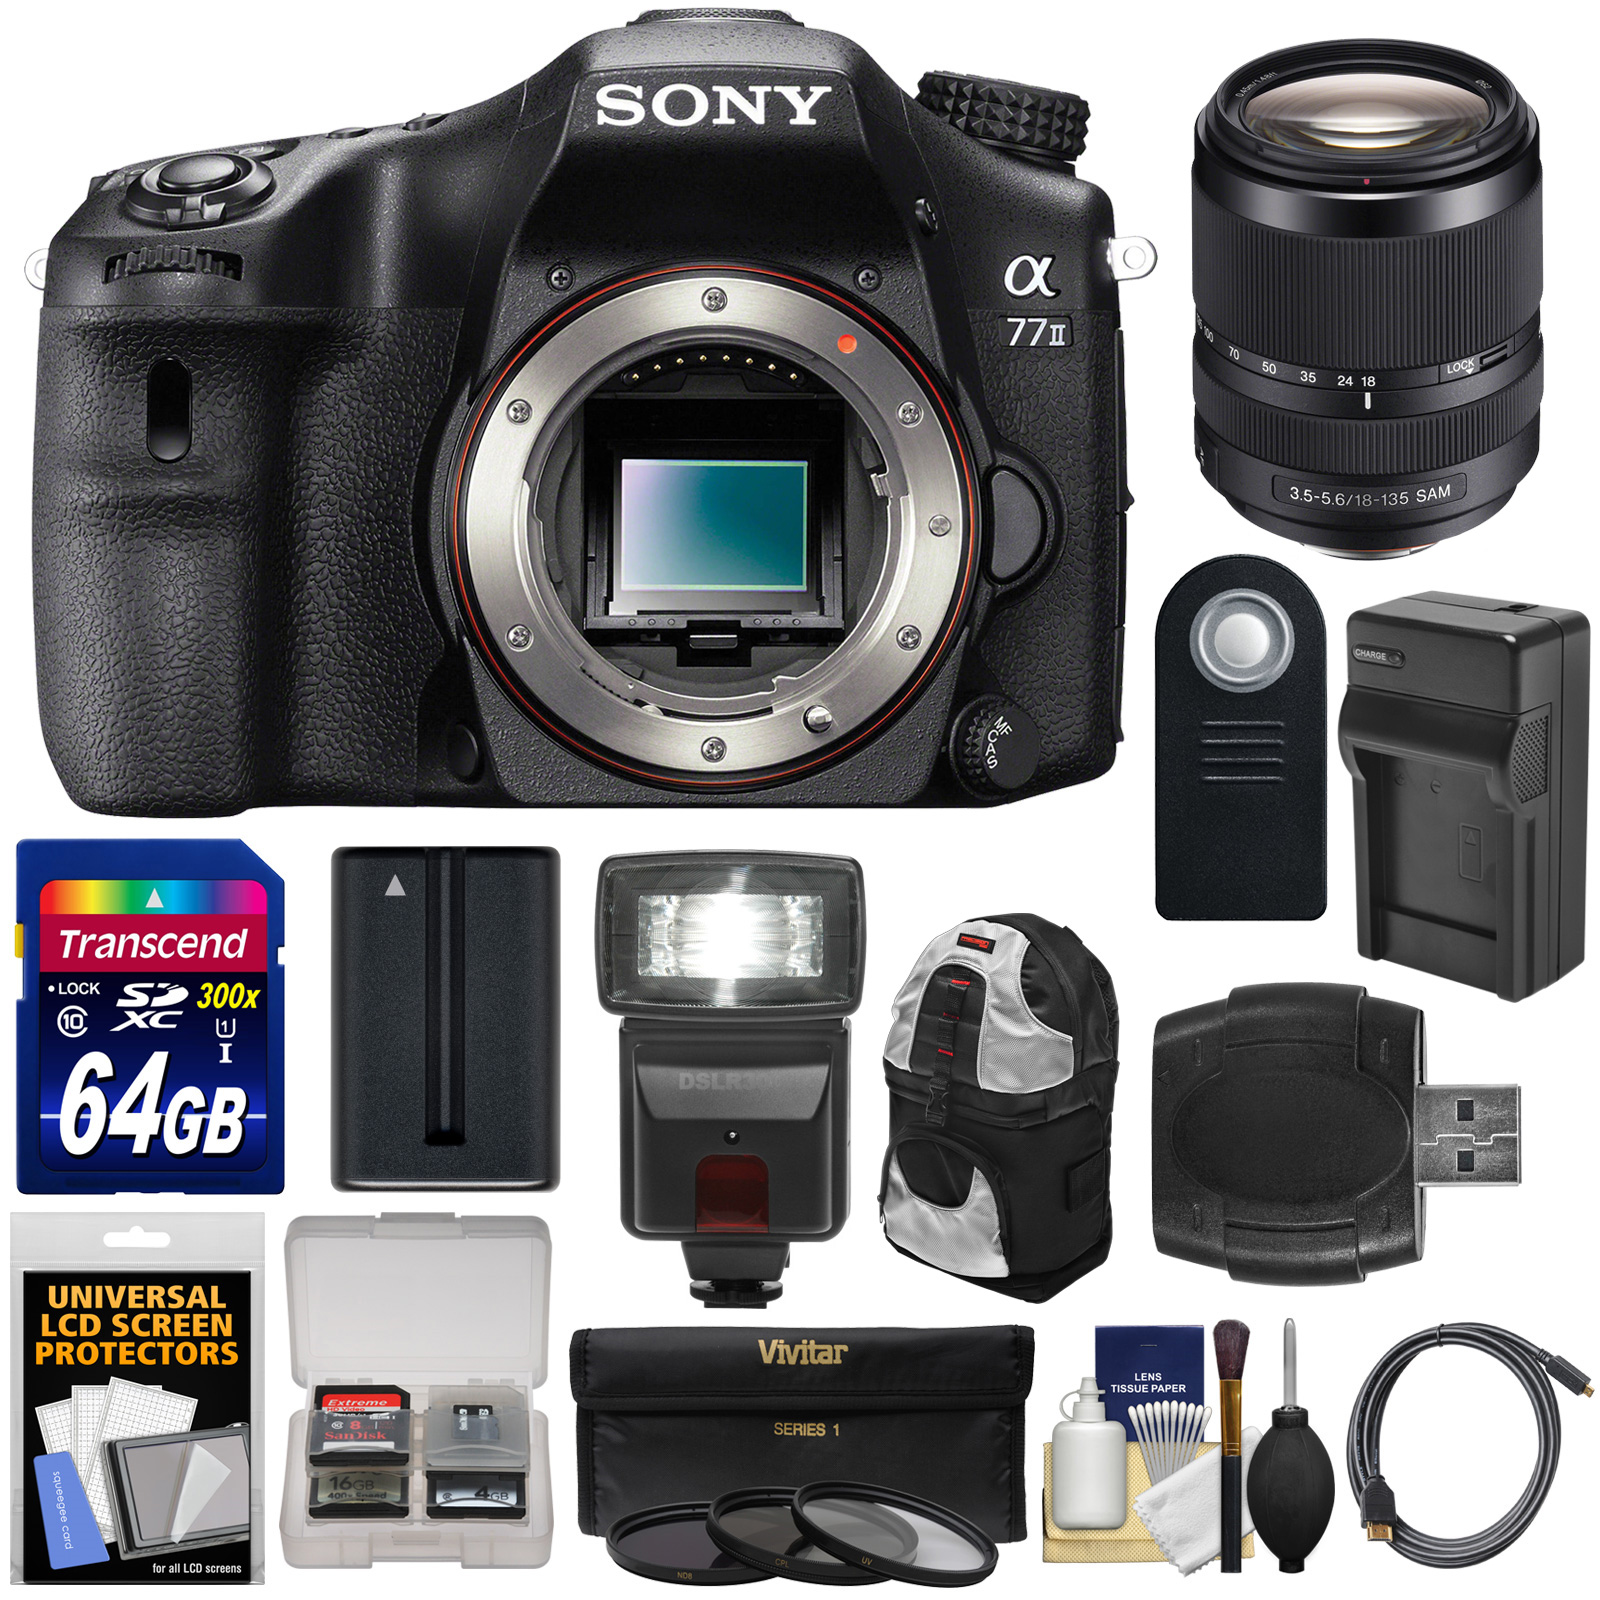 Camara Fotografica Semi Profesional Sony Alpha A77 II Wi-Fi Digital SLR Camera Body with 18-135mm Lens + 64GB Card + Battery + Charger + Backpack Case + Filters + Flash + Kit + Sony en VeoyCompro.net